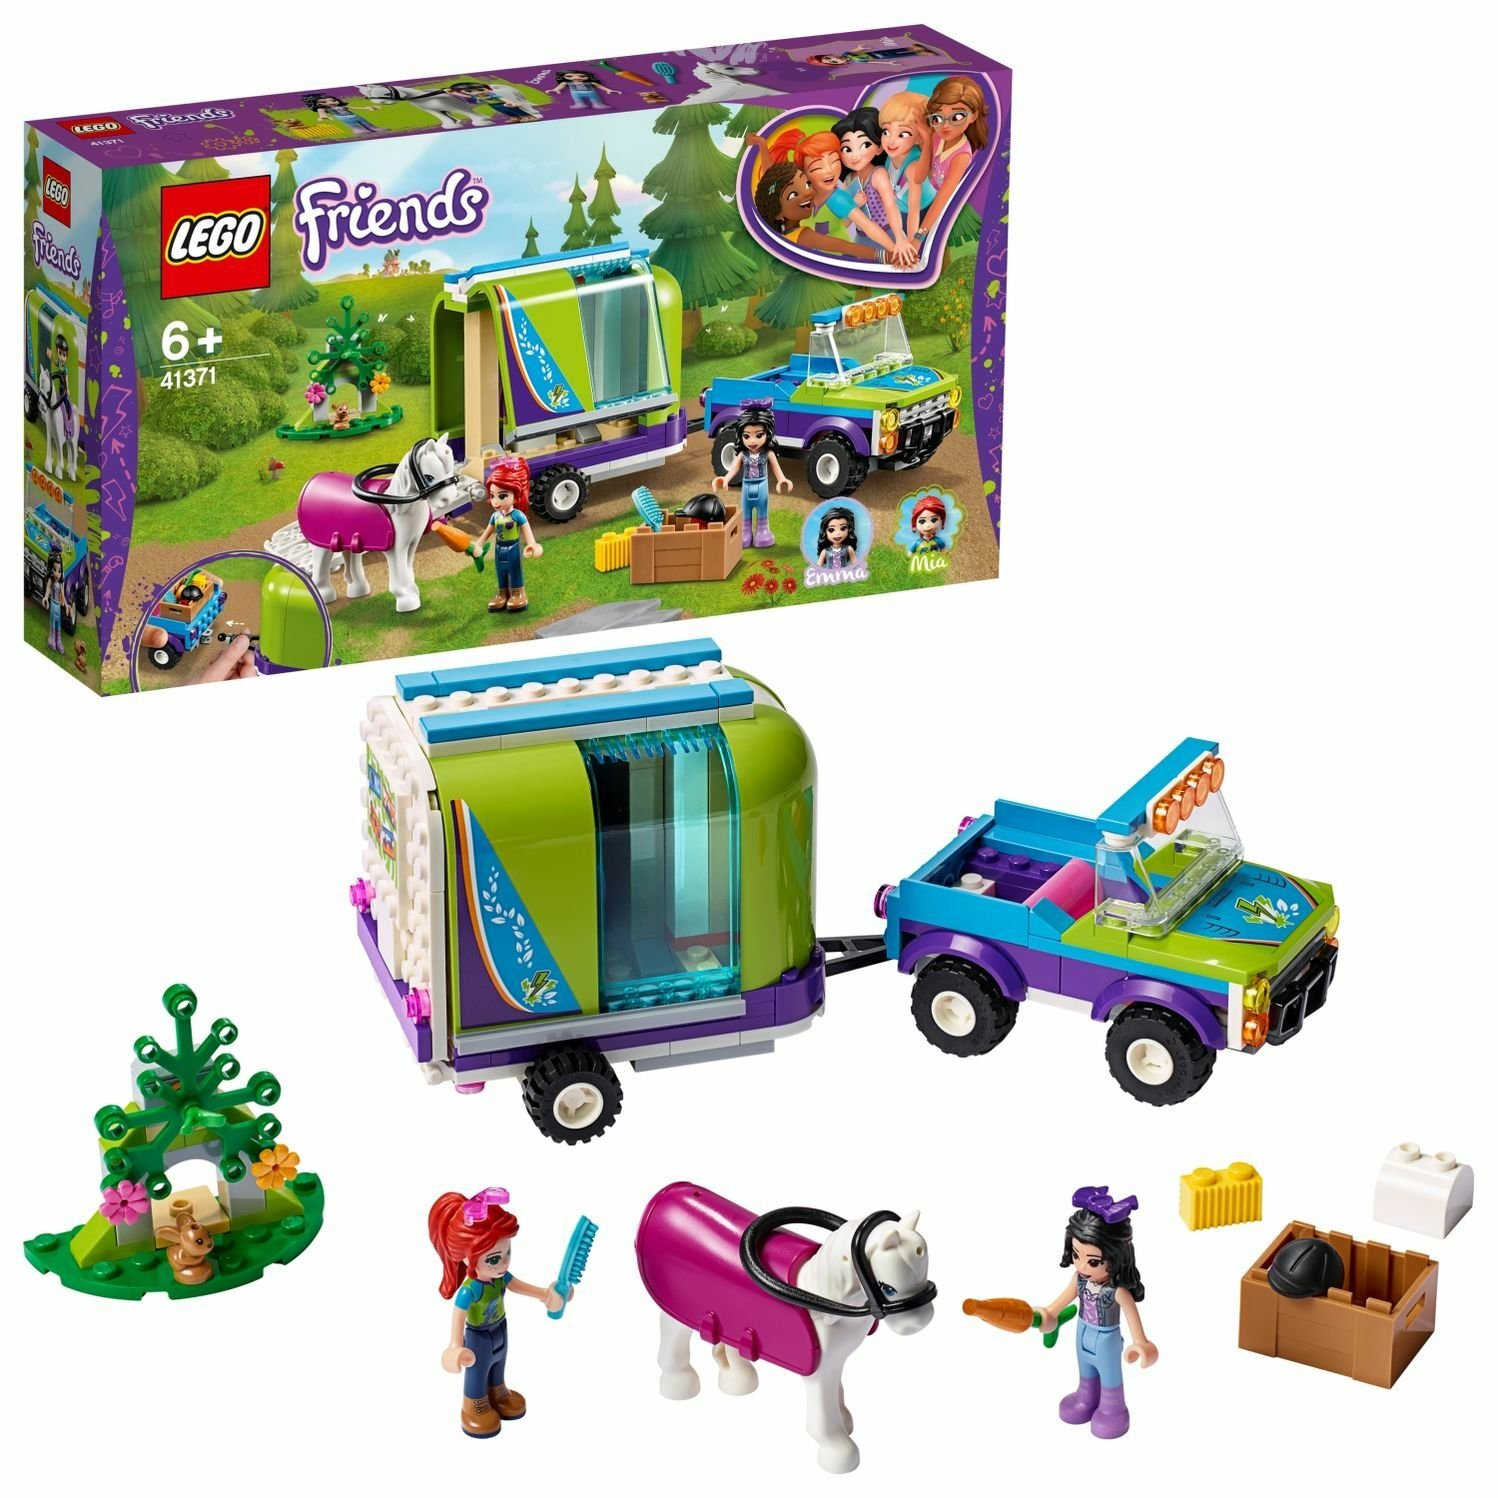 LEGO Friends Mia's Horse Trailer Stable Toy - 41371